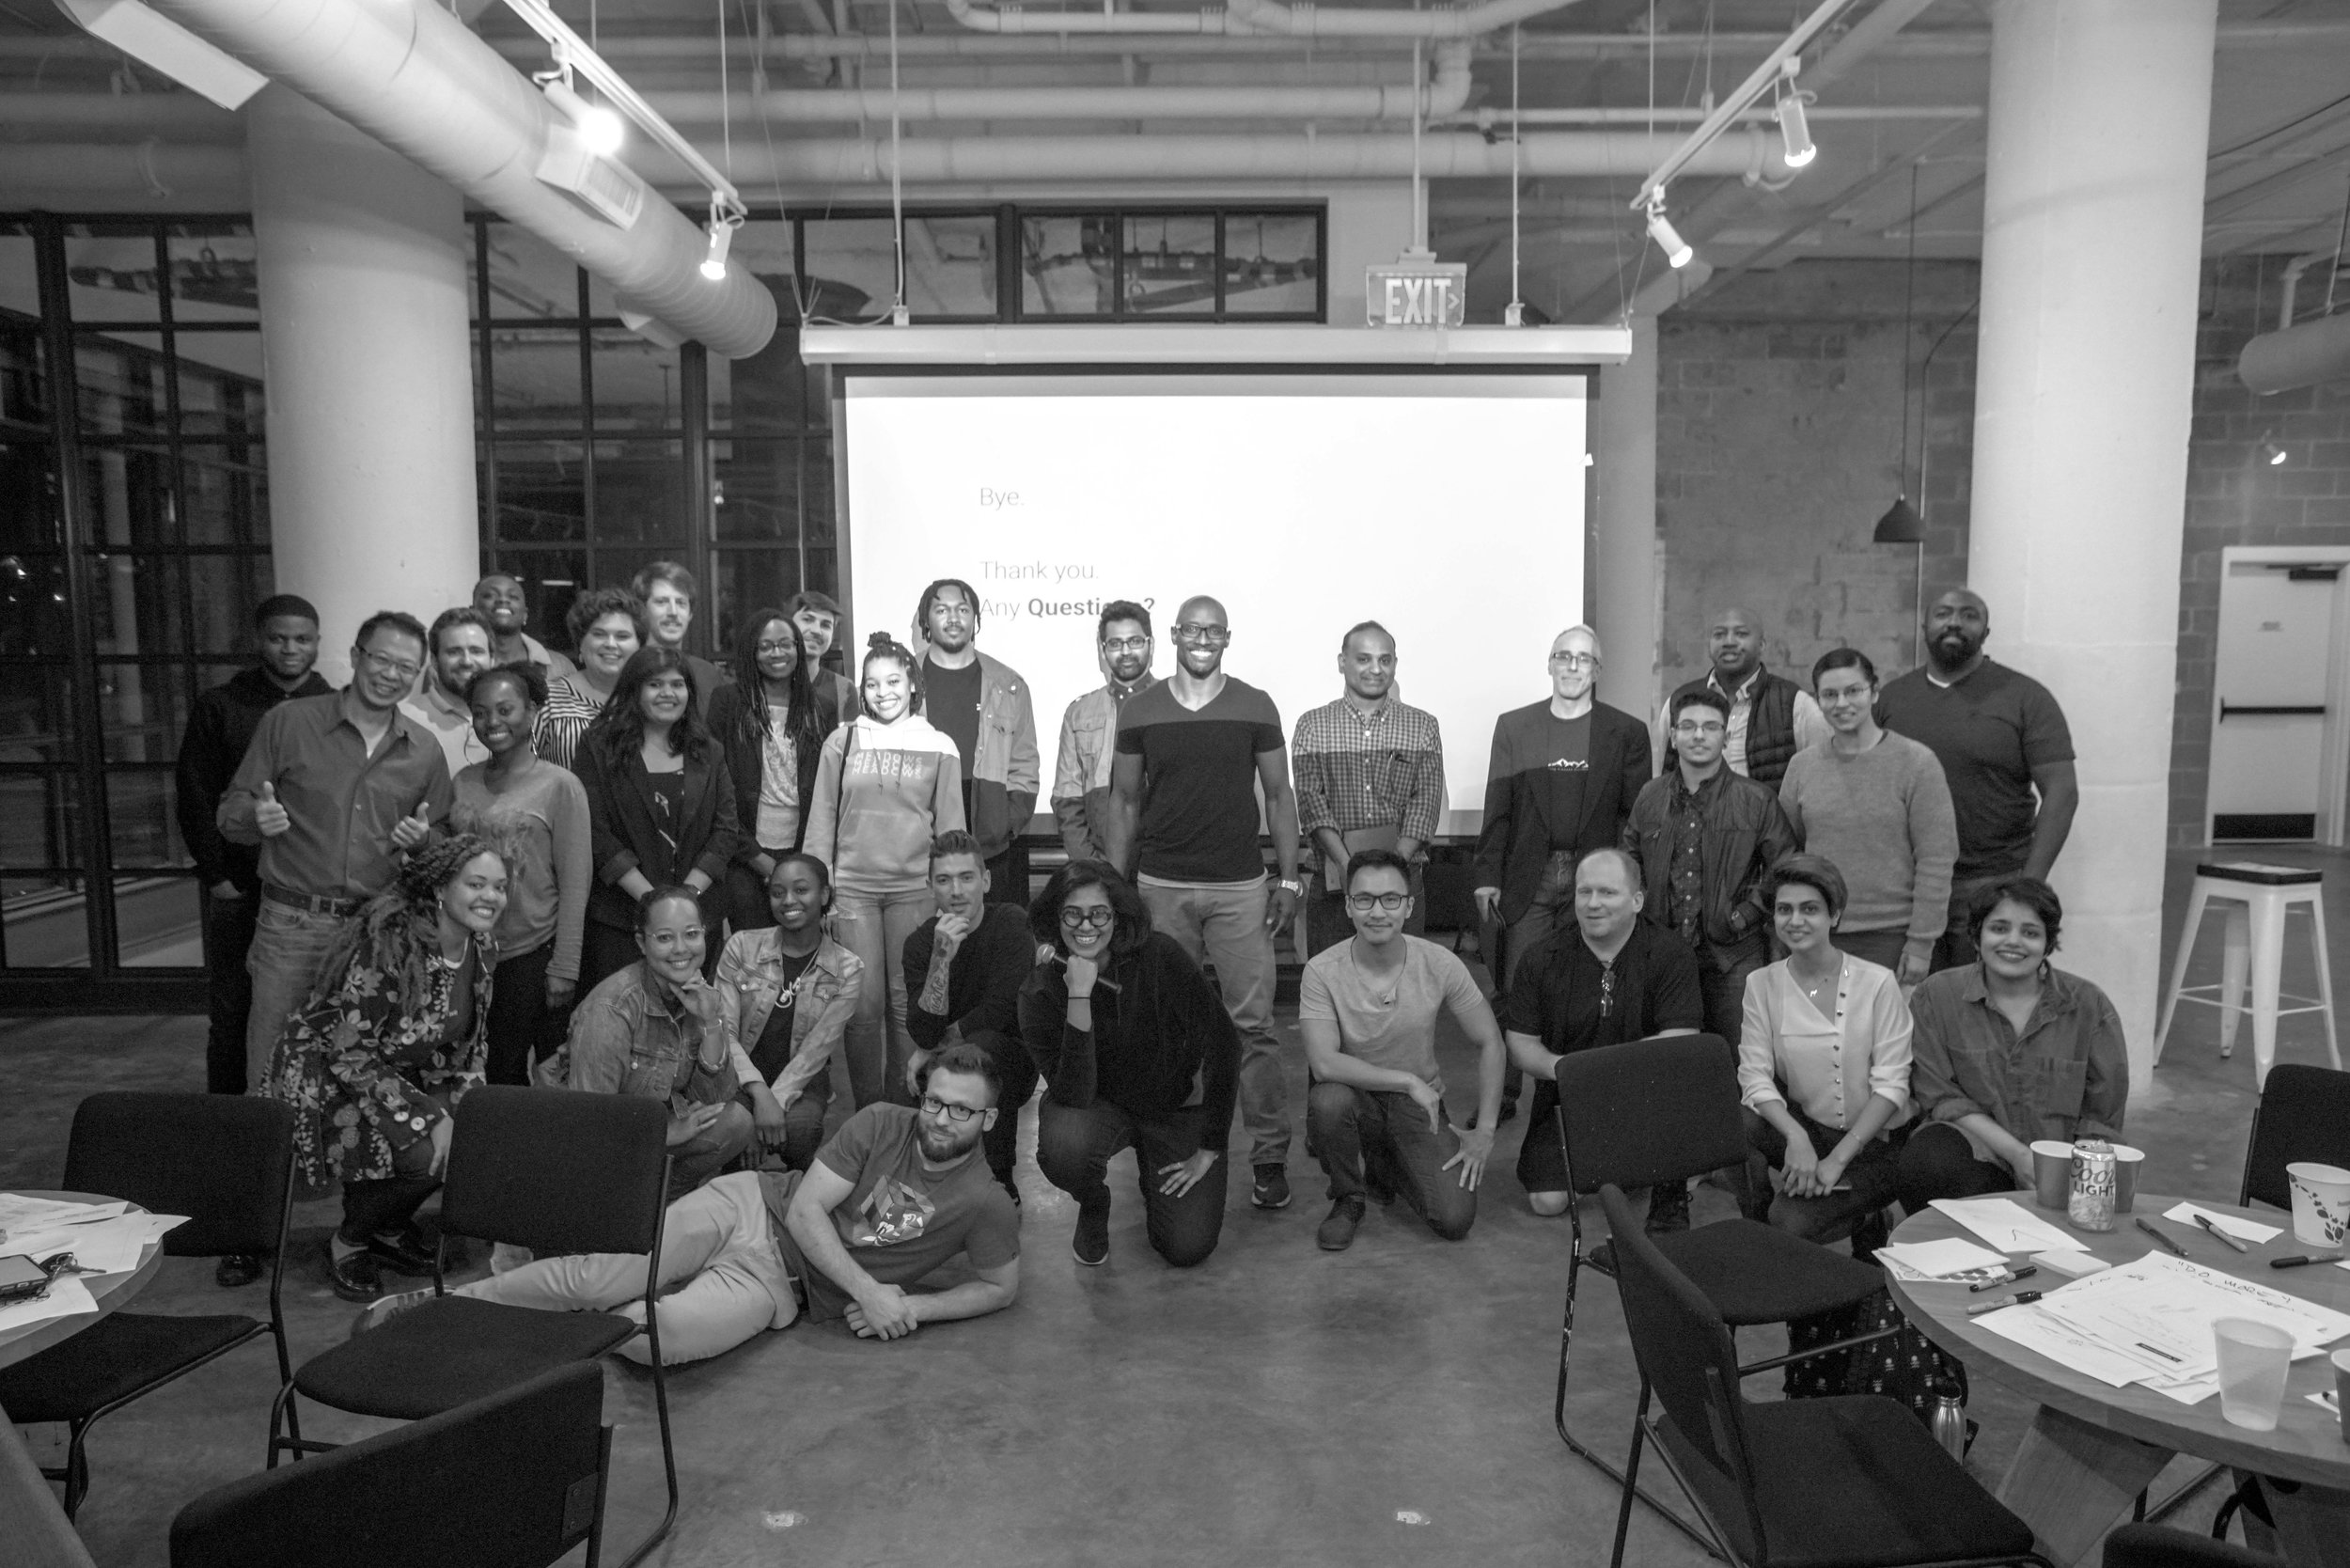 I conducted a pared down version of the 1-day workshop at General Assembly in partnership with the local Art in Tech meetup.